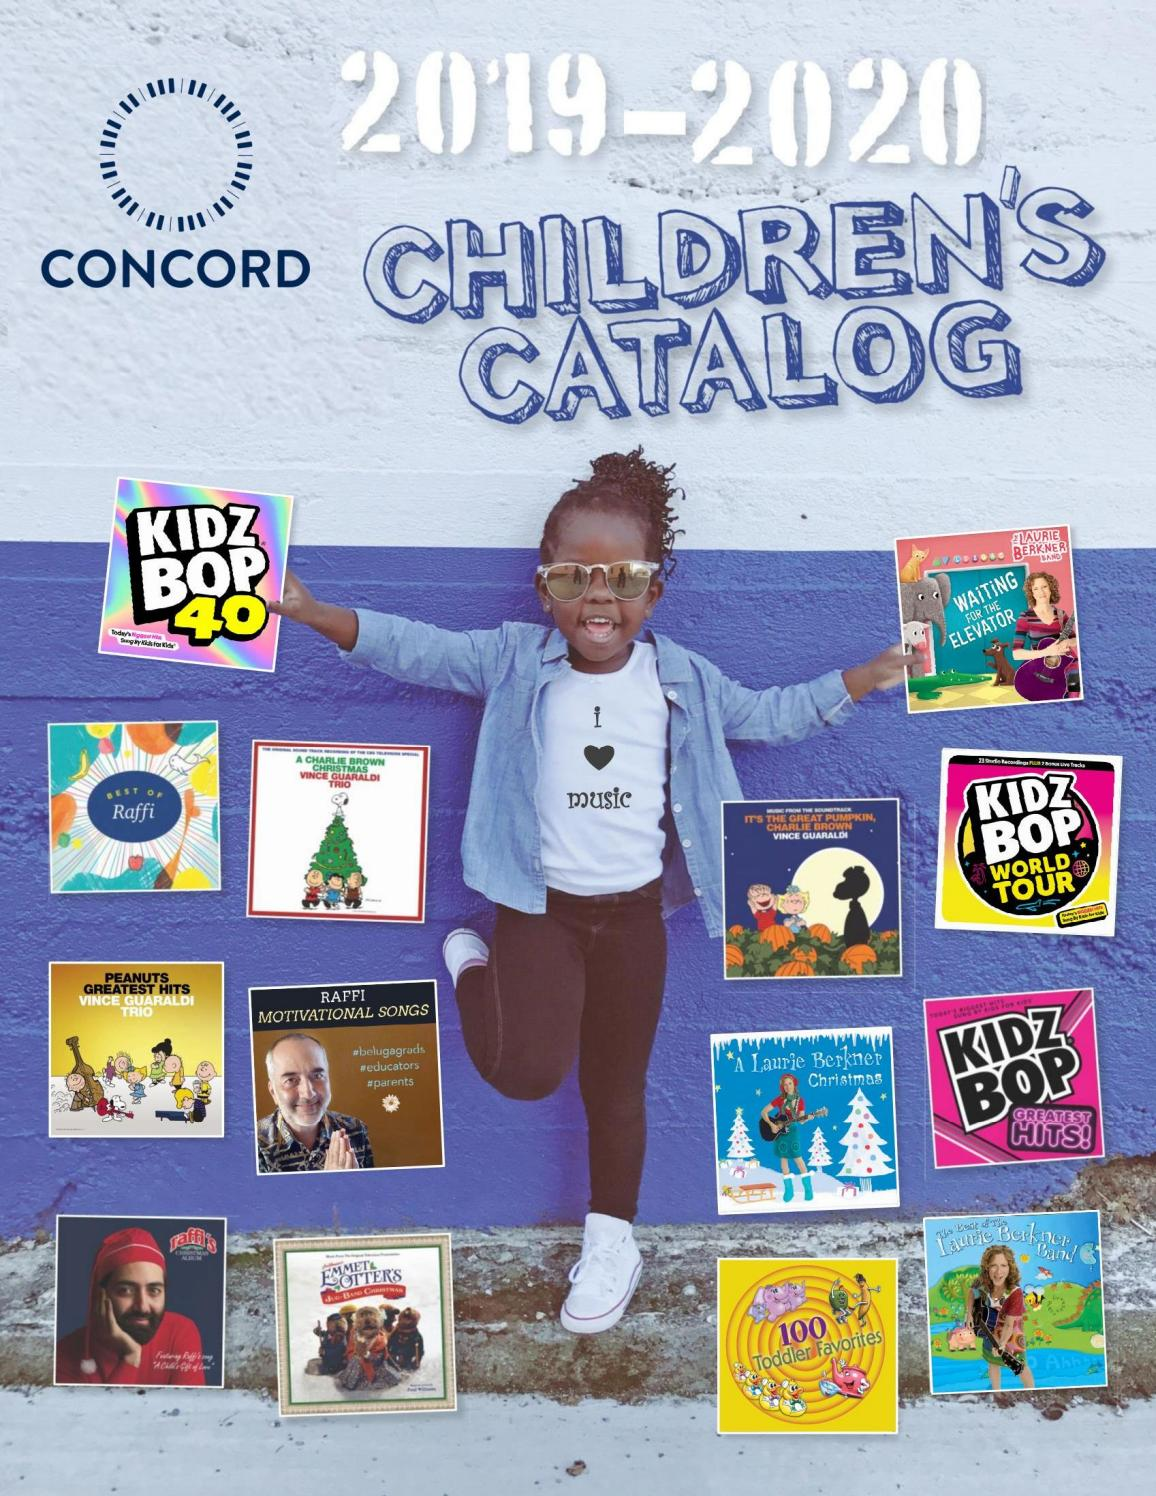 Concord Children S Music Catalog 2019 2020 By Concordvinylcatalog Issuu Make me your one and only. concord children s music catalog 2019